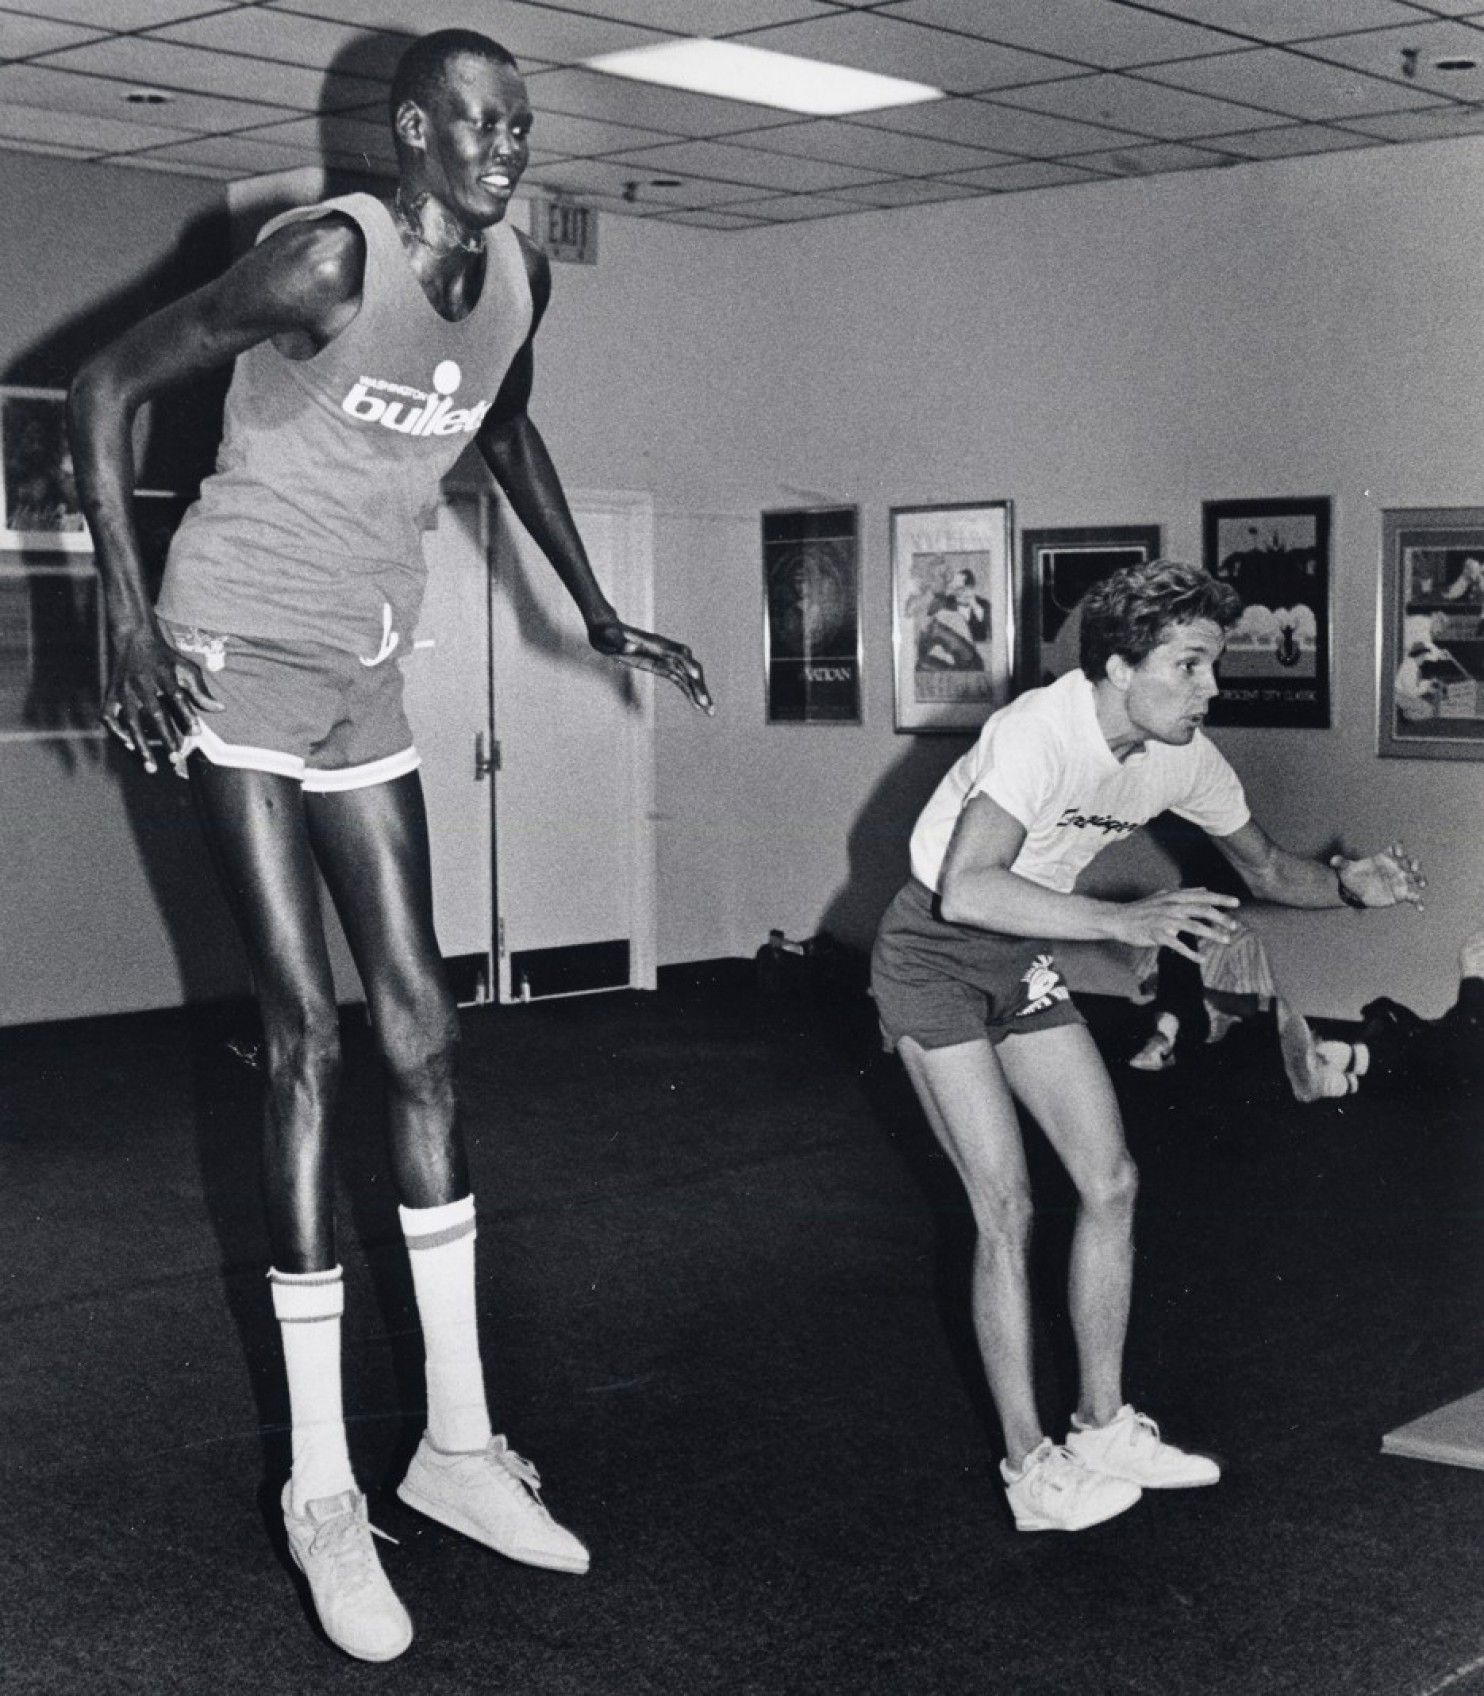 ddcc46cceb6 Warriors honor former Bullets center Manute Bol with 7-foot-7 bobblehead -  The Washington Post